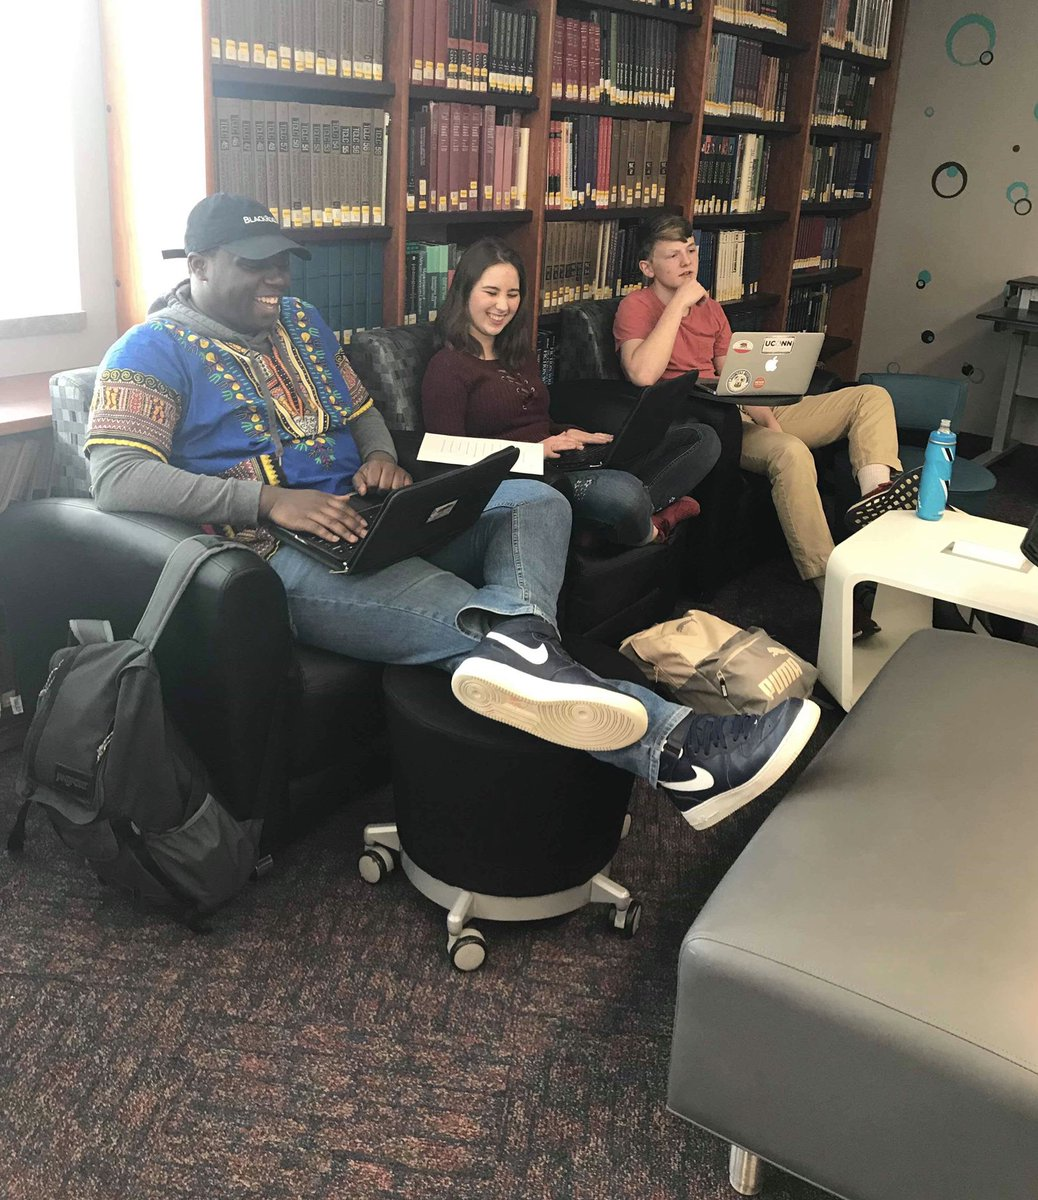 Caught a happy moment in the #ThinkTank today  #community #librarylife #learningcommons #studentlife #BHSlearns<br>http://pic.twitter.com/n0BpHRMTVt